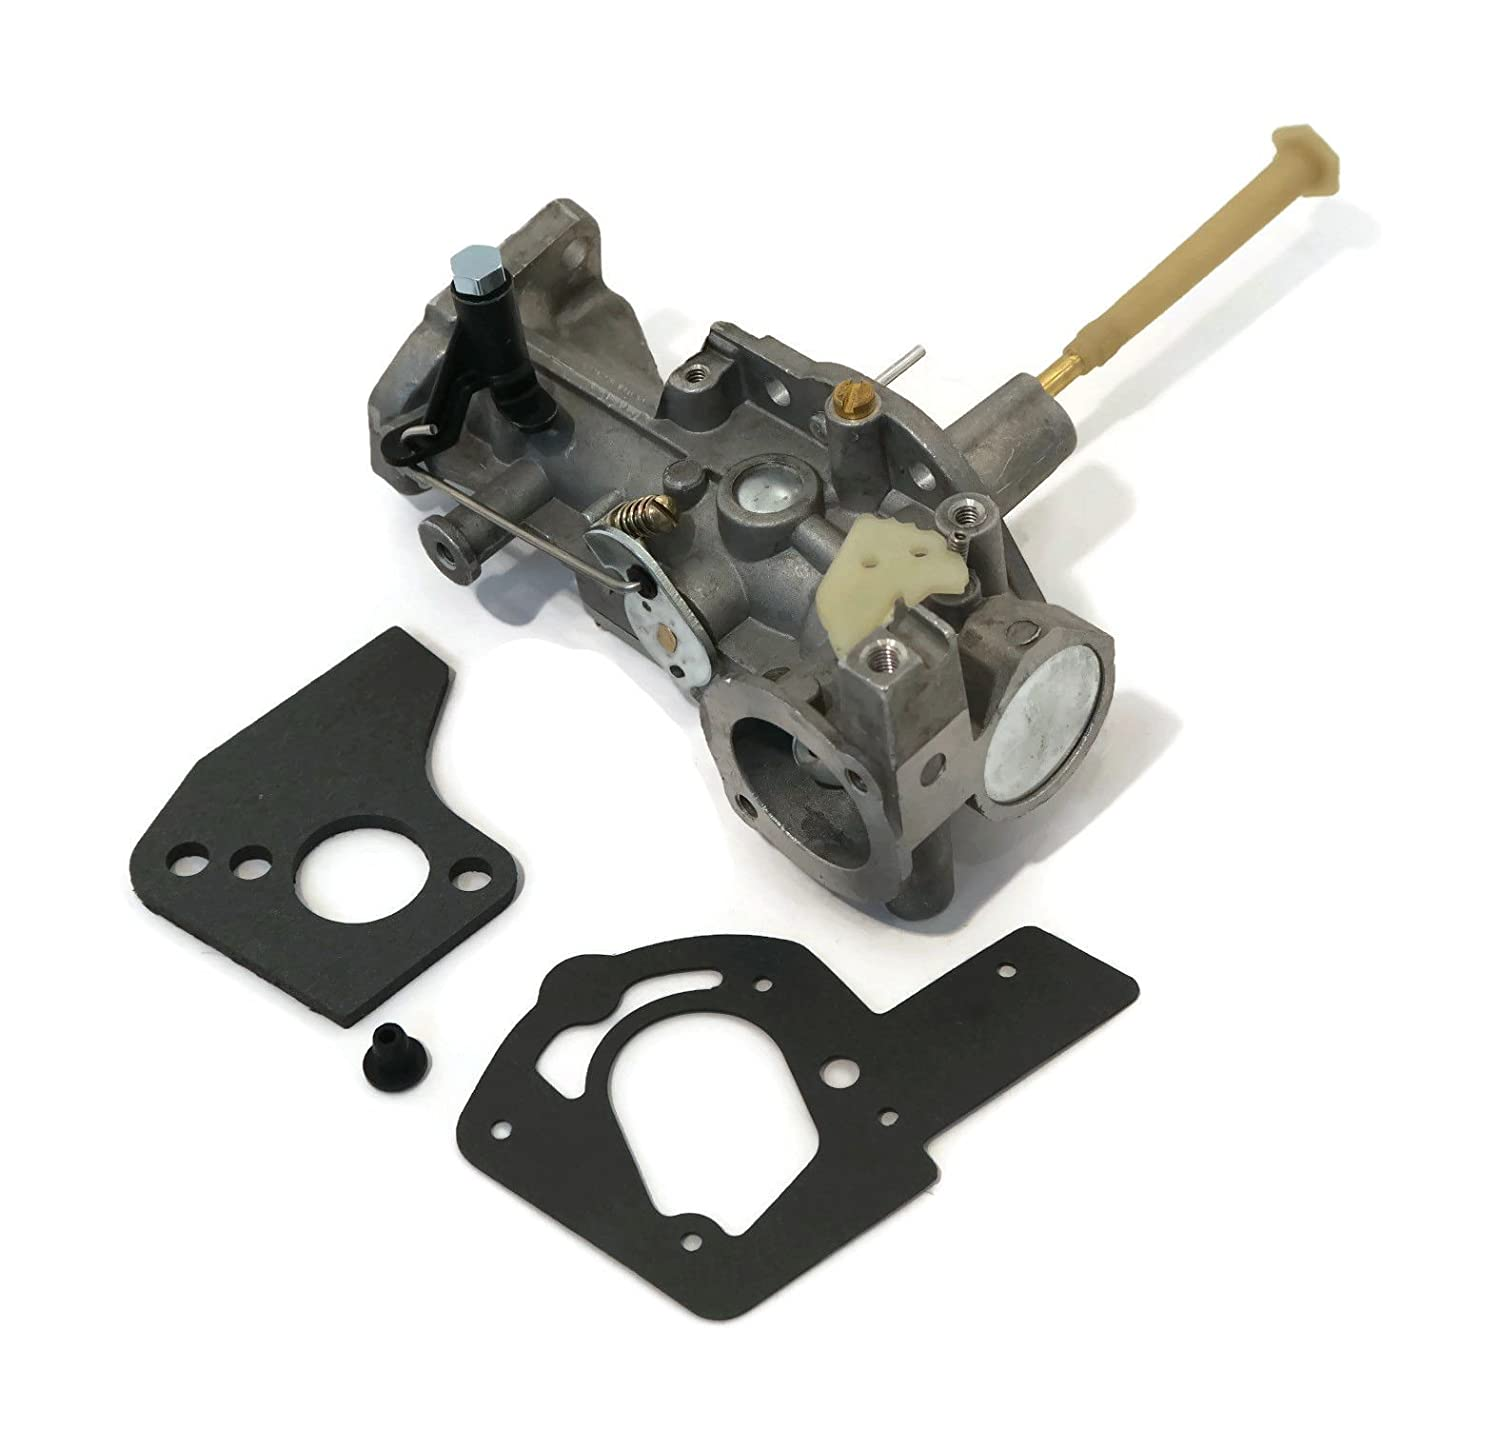 Carburetor & GASKETS for Briggs Stratton Model 135232, 135237, 135252, 135292 by The ROP Shop